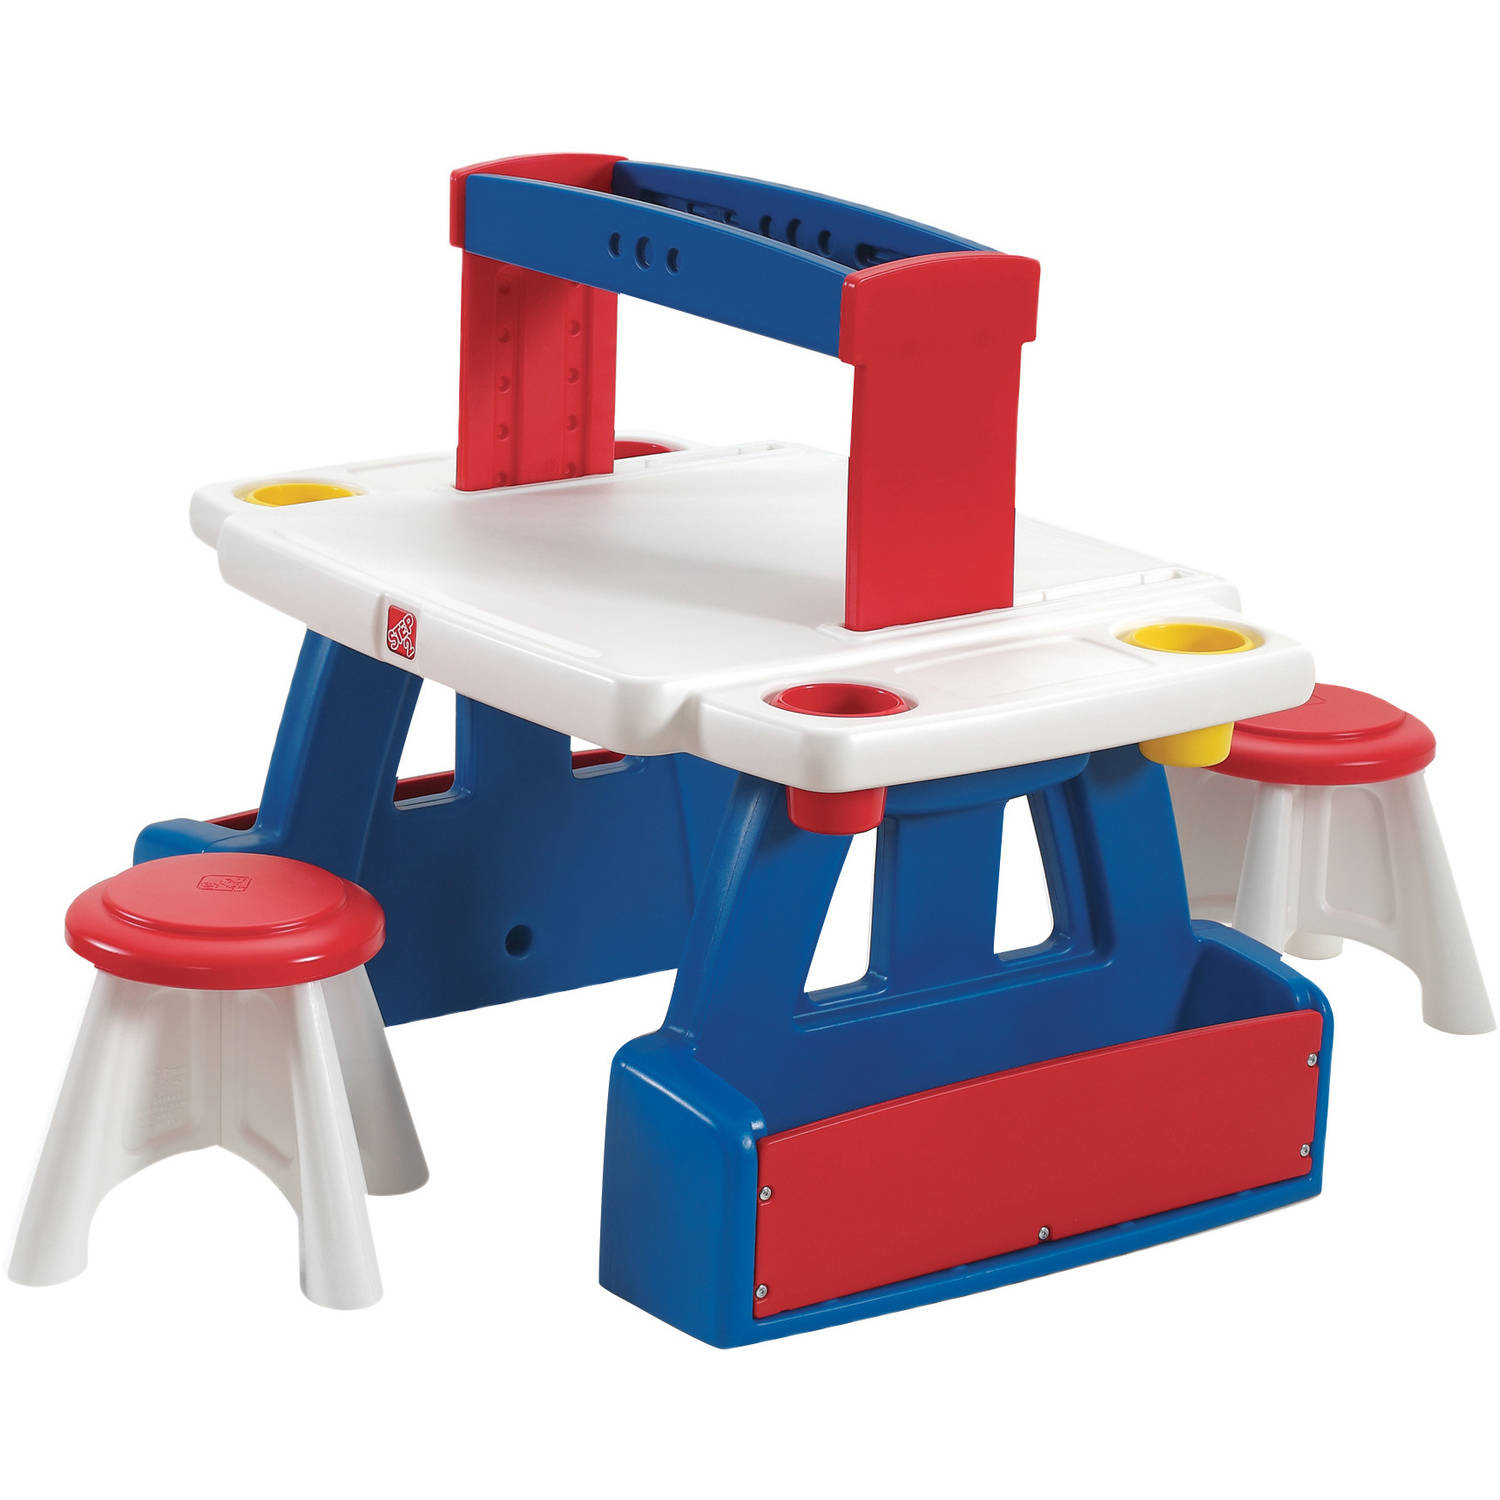 Step2 Creative Projects Table Includes Two Stools